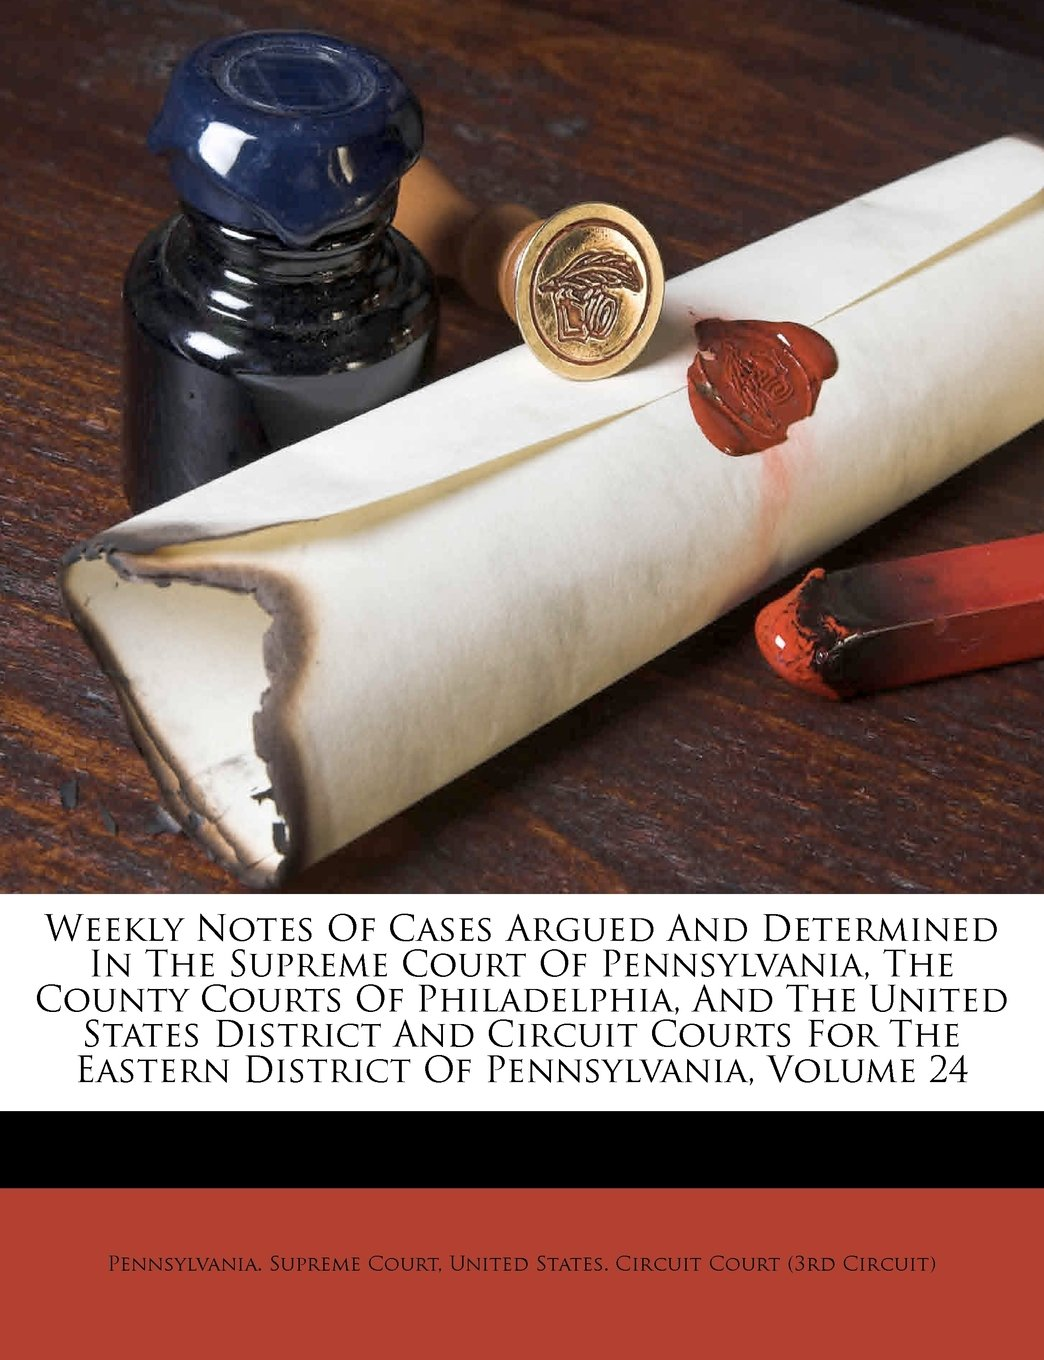 Read Online Weekly Notes Of Cases Argued And Determined In The Supreme Court Of Pennsylvania, The County Courts Of Philadelphia, And The United States District ... Eastern District Of Pennsylvania, Volume 24 pdf epub